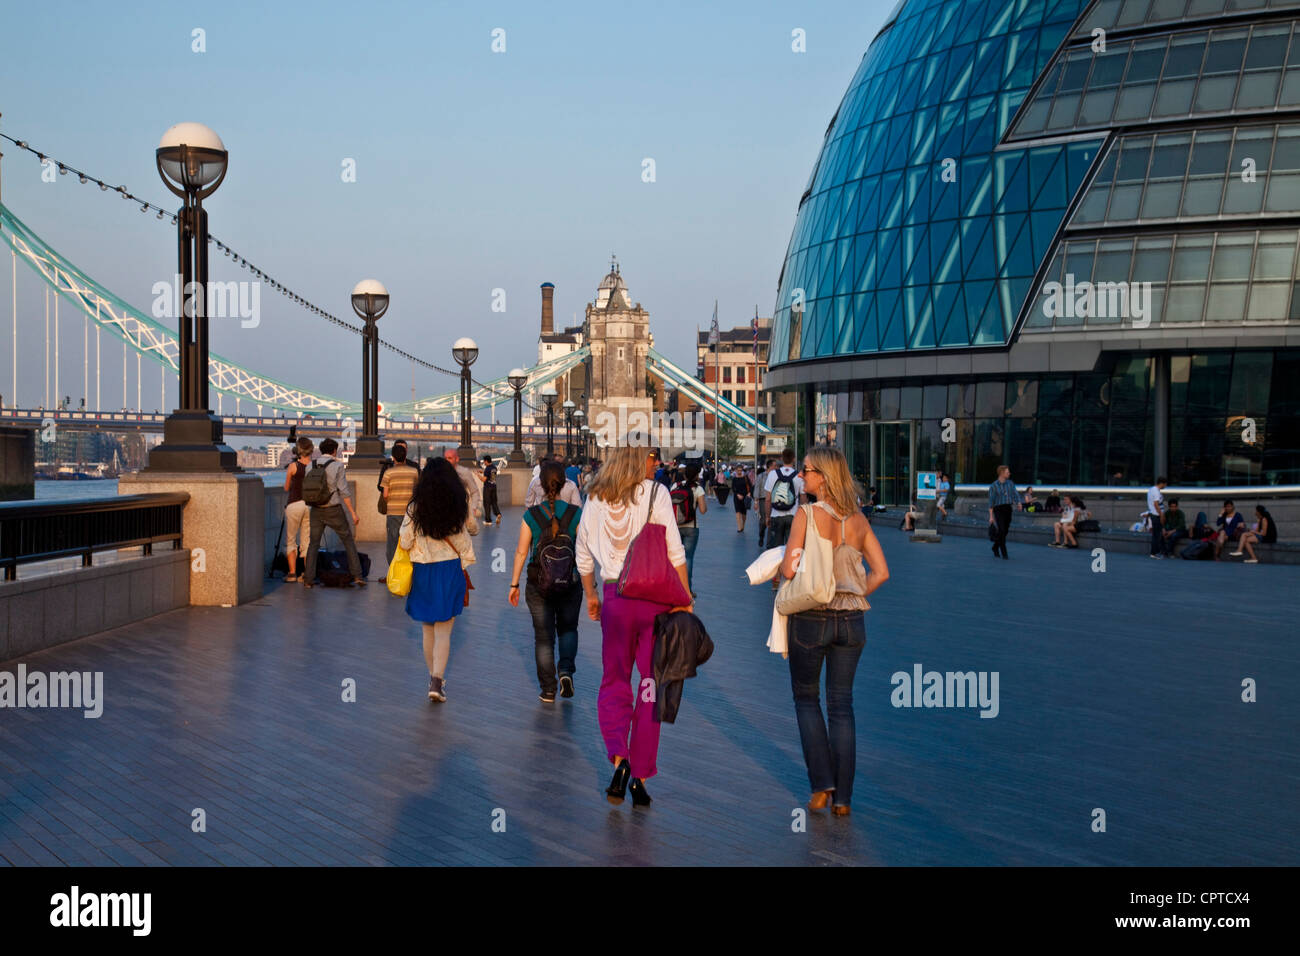 The London Assembly Building and Jubilee Walkway, London, England - Stock Image